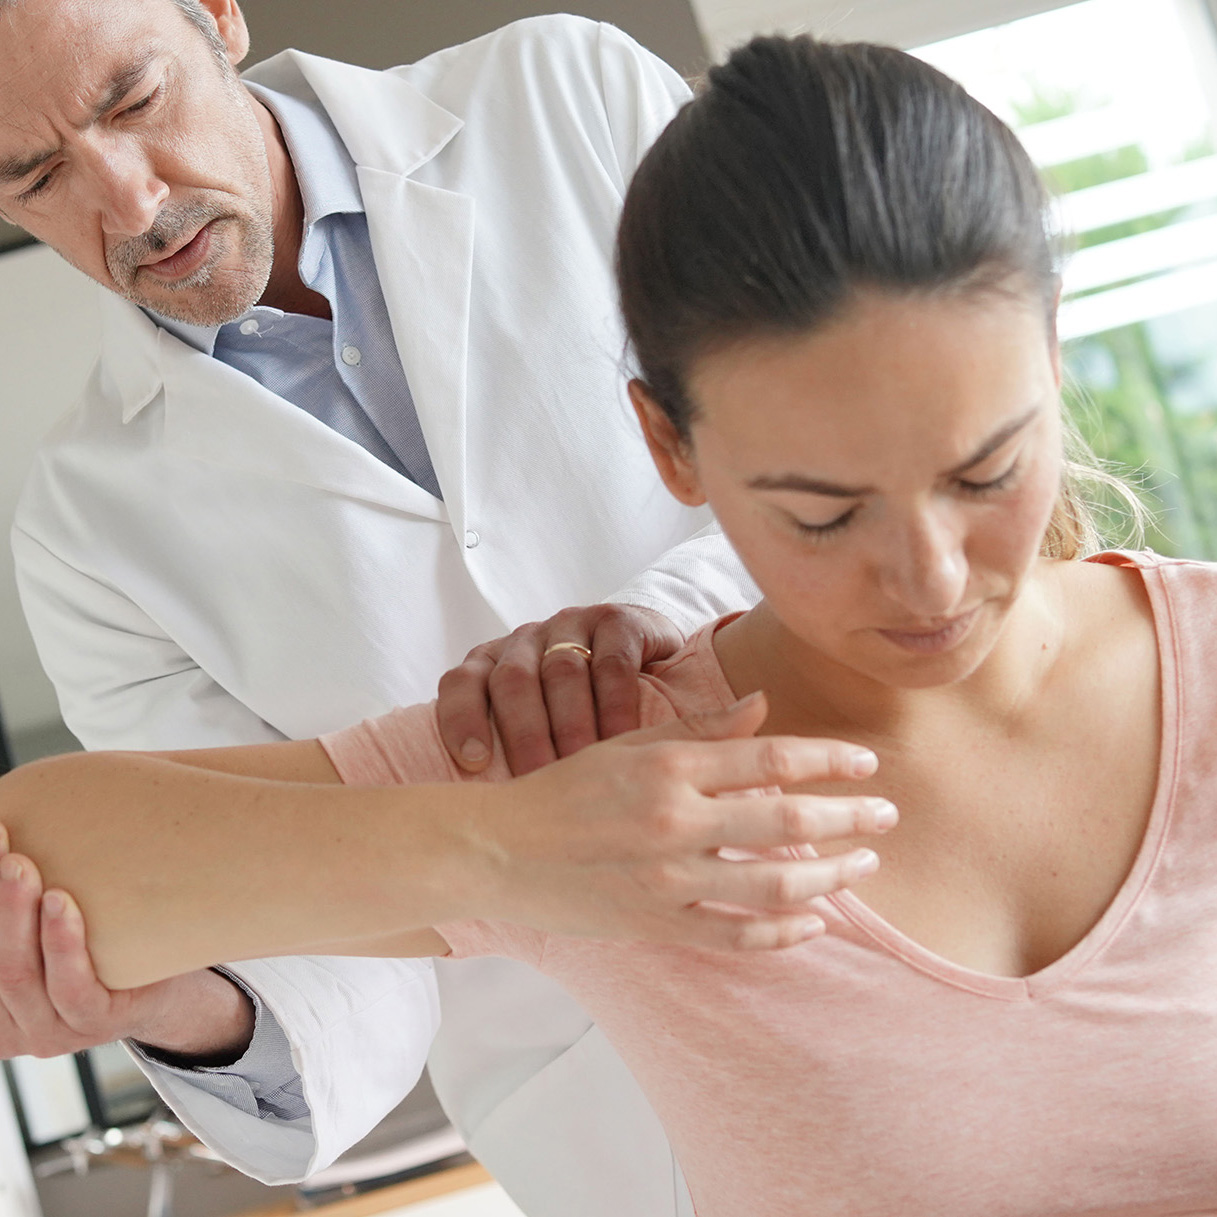 Shoulder Dislocation Injury Compensation - No Win, No Fee / Accident & Personal Injury Solicitors / Accident Claims UK